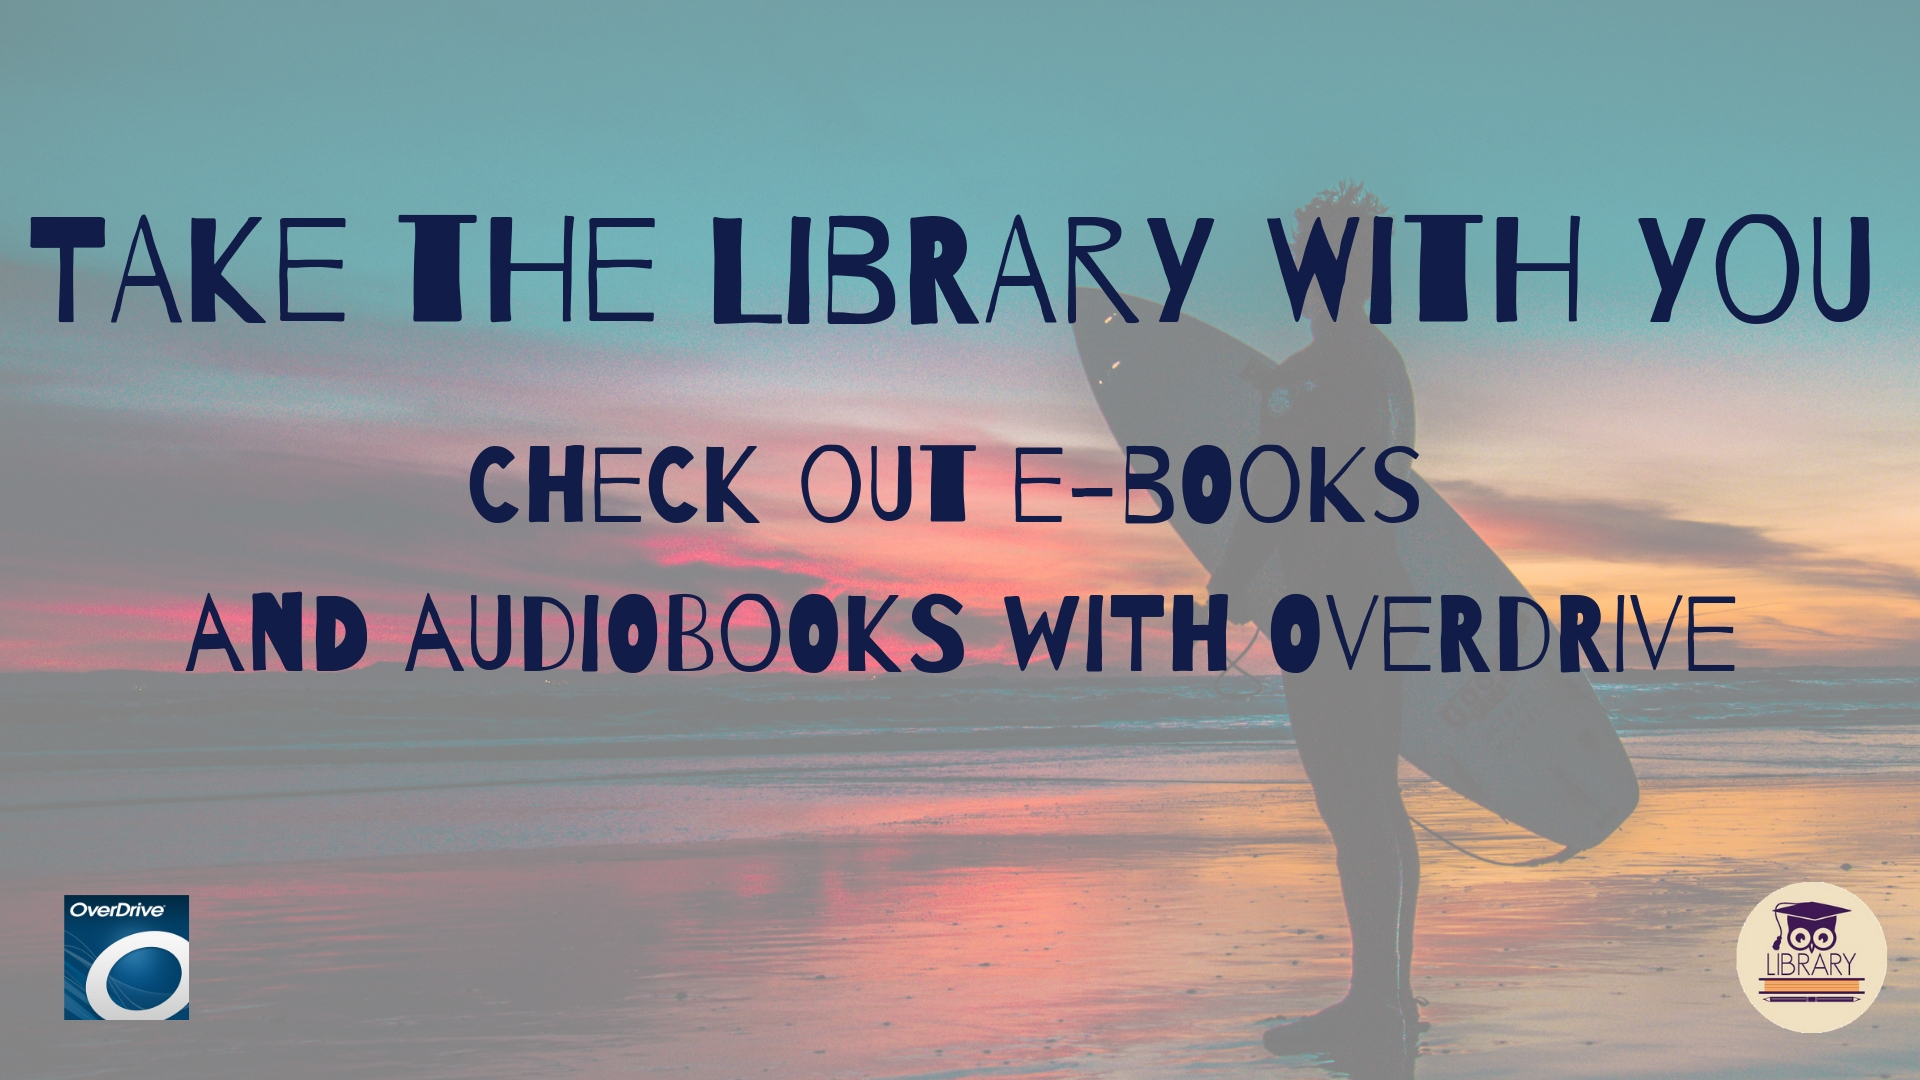 get ebooks and audiobooks with overdrive!